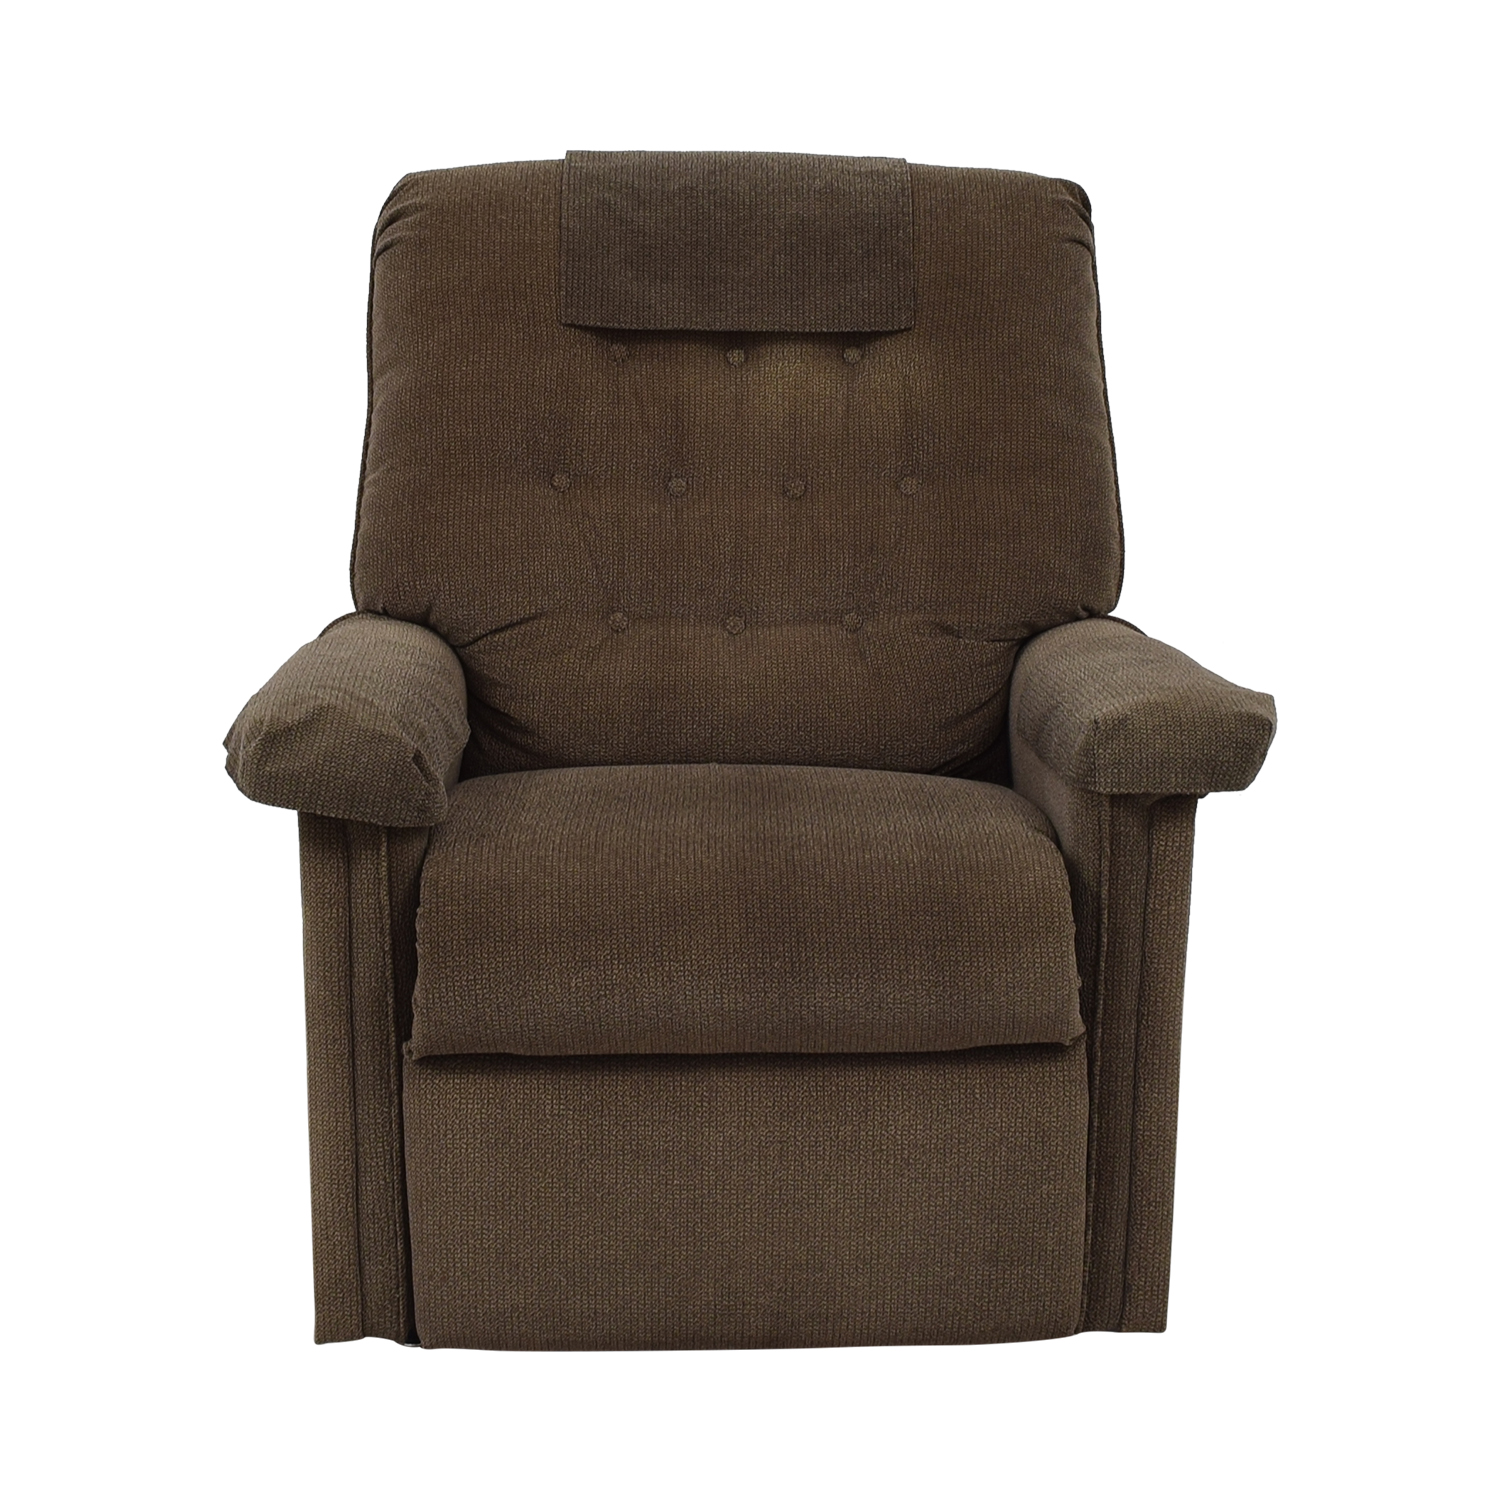 Pride Mobility Pride Mobility Brown Recliner for sale